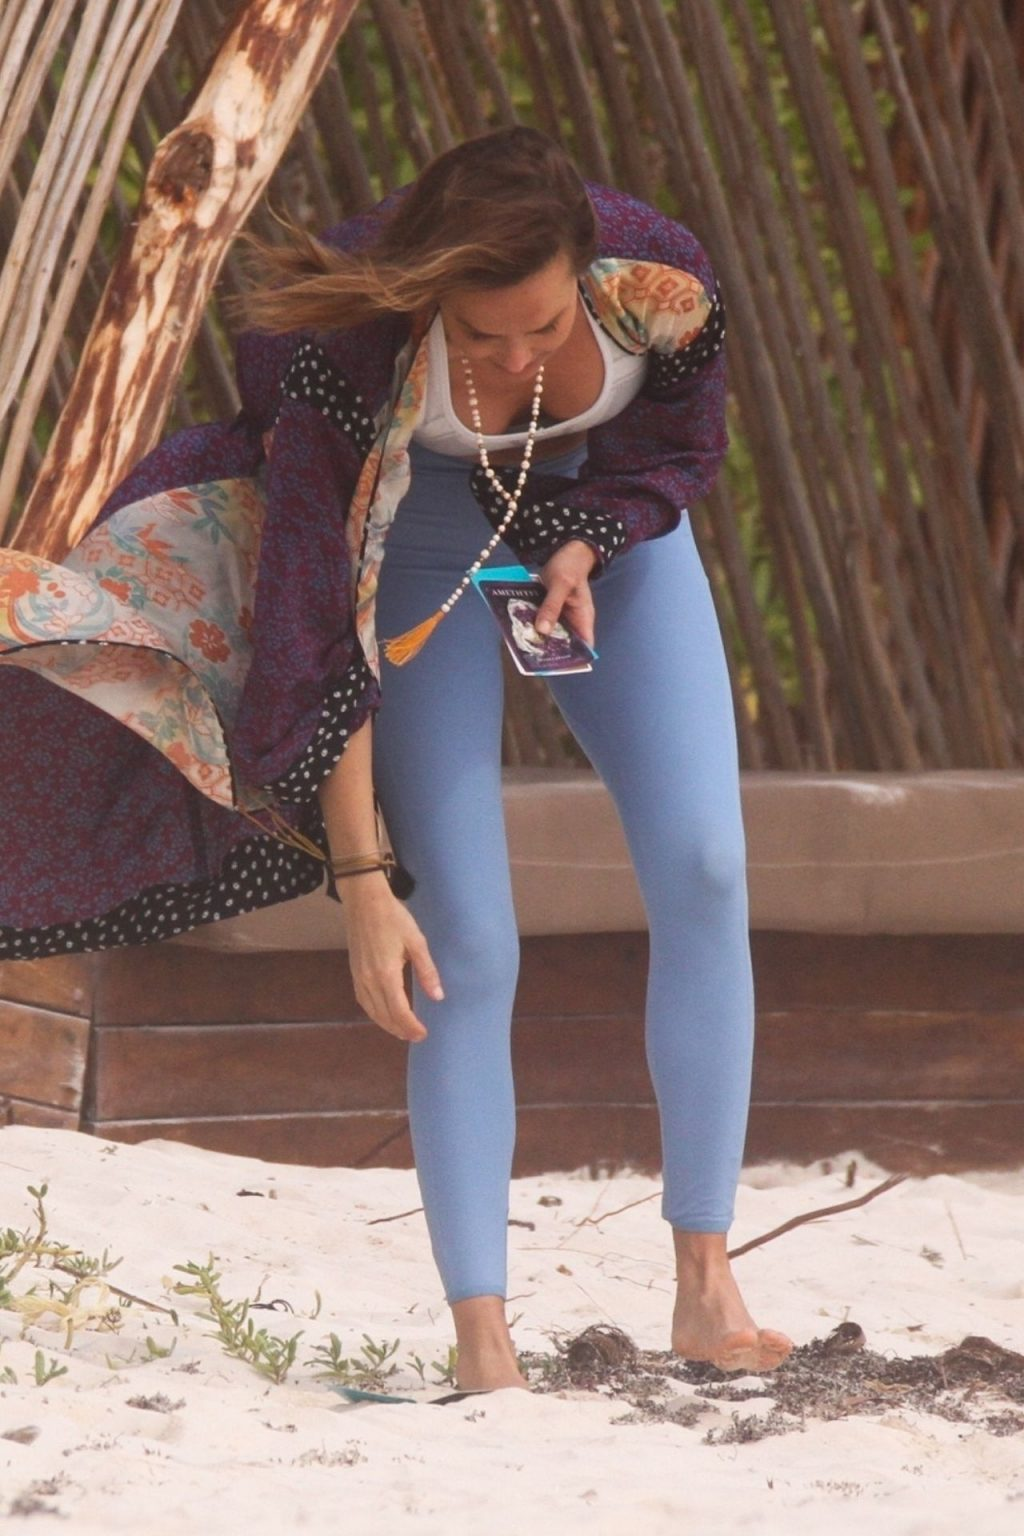 Arielle Kebbel Spends a Day at the Beach with a Clairvoyant (41 Photos)